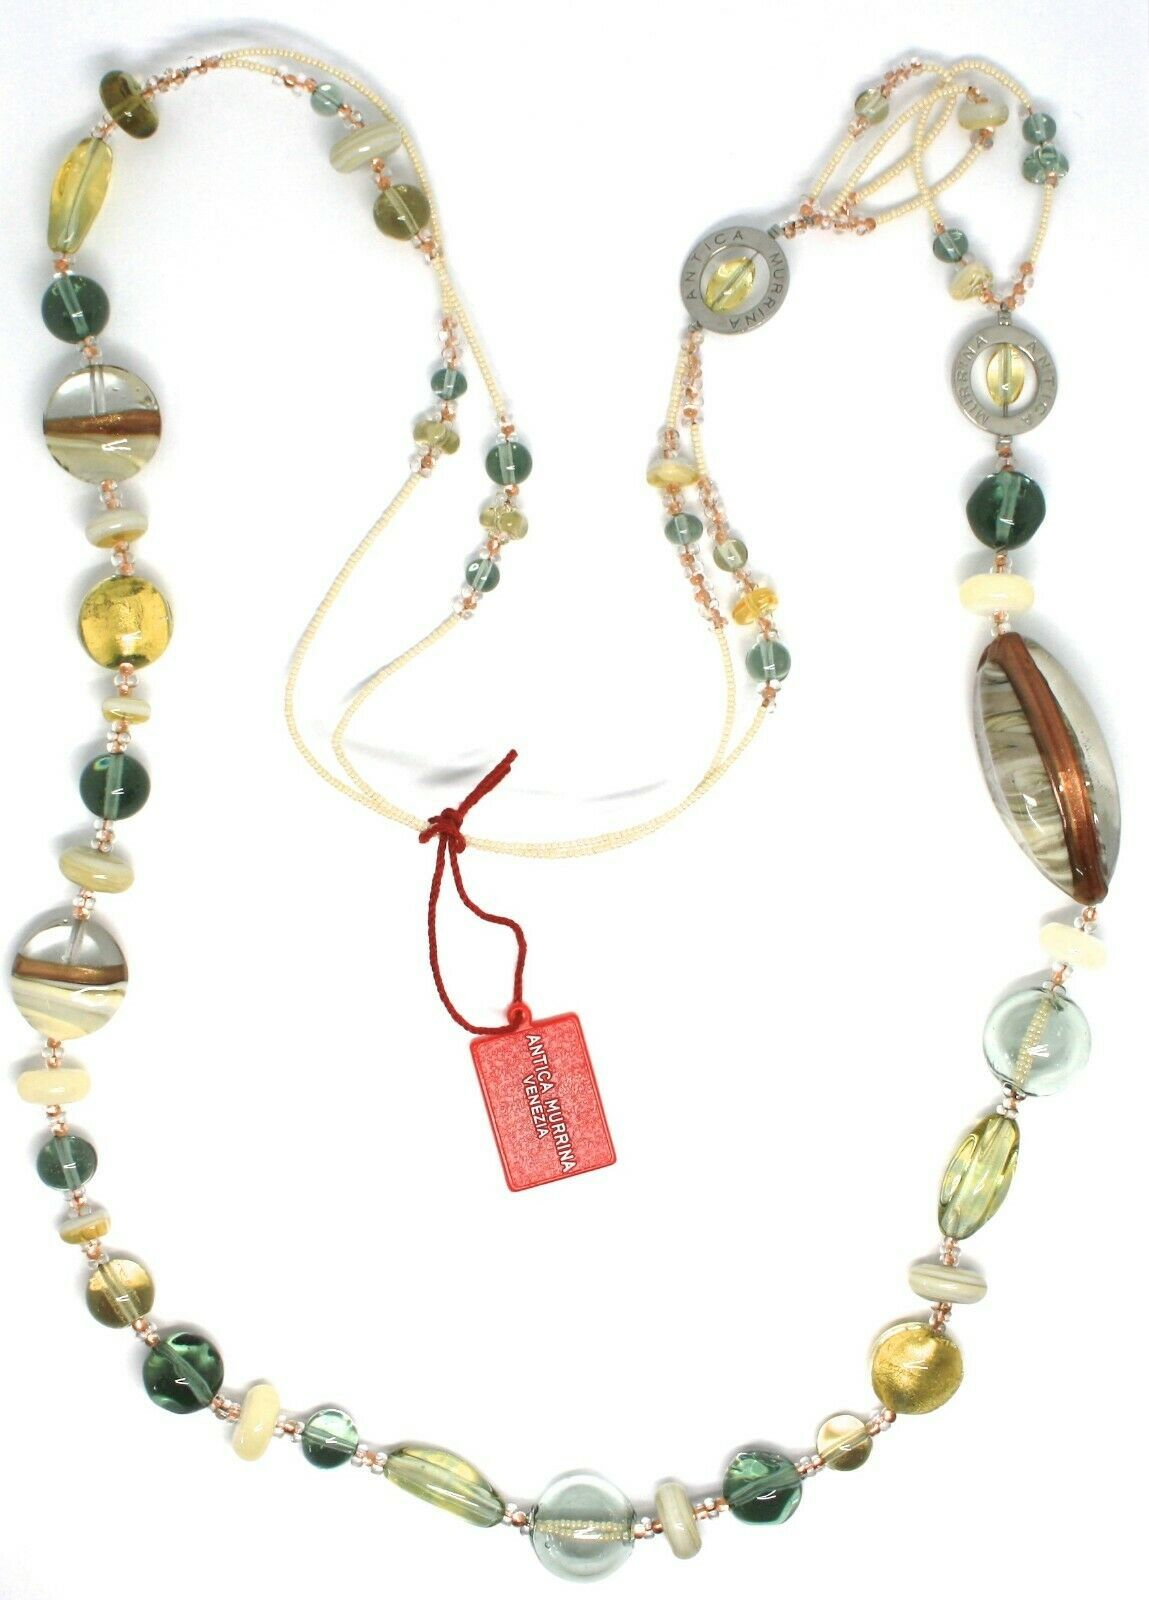 Necklace Antica Murrina Venezia, Glass Murano, Long 100 cm, Beige CO696A02